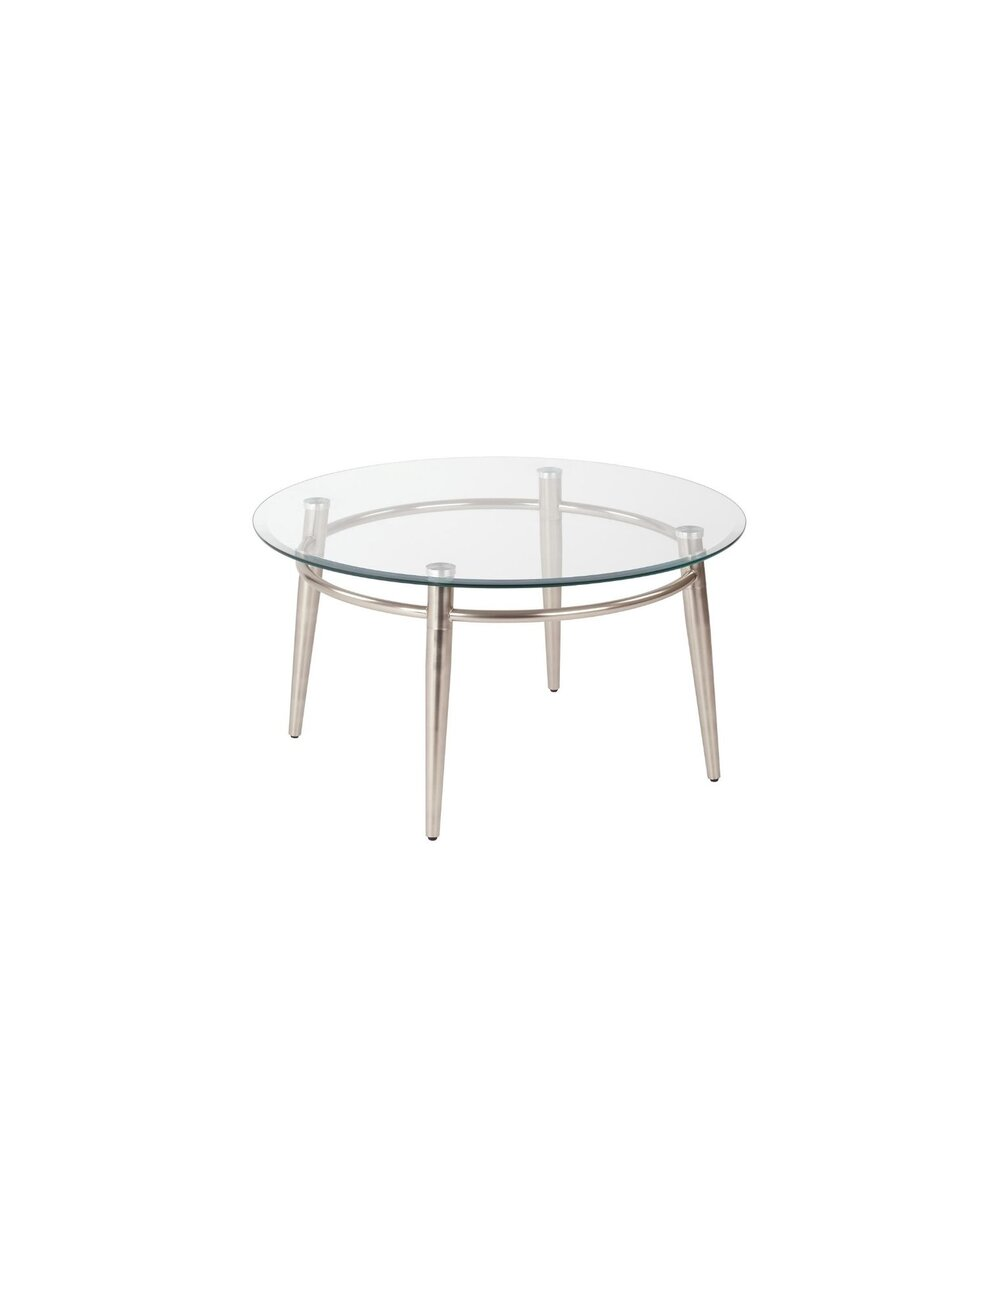 30 Round Glass Coffee Table Dynamic Office Services